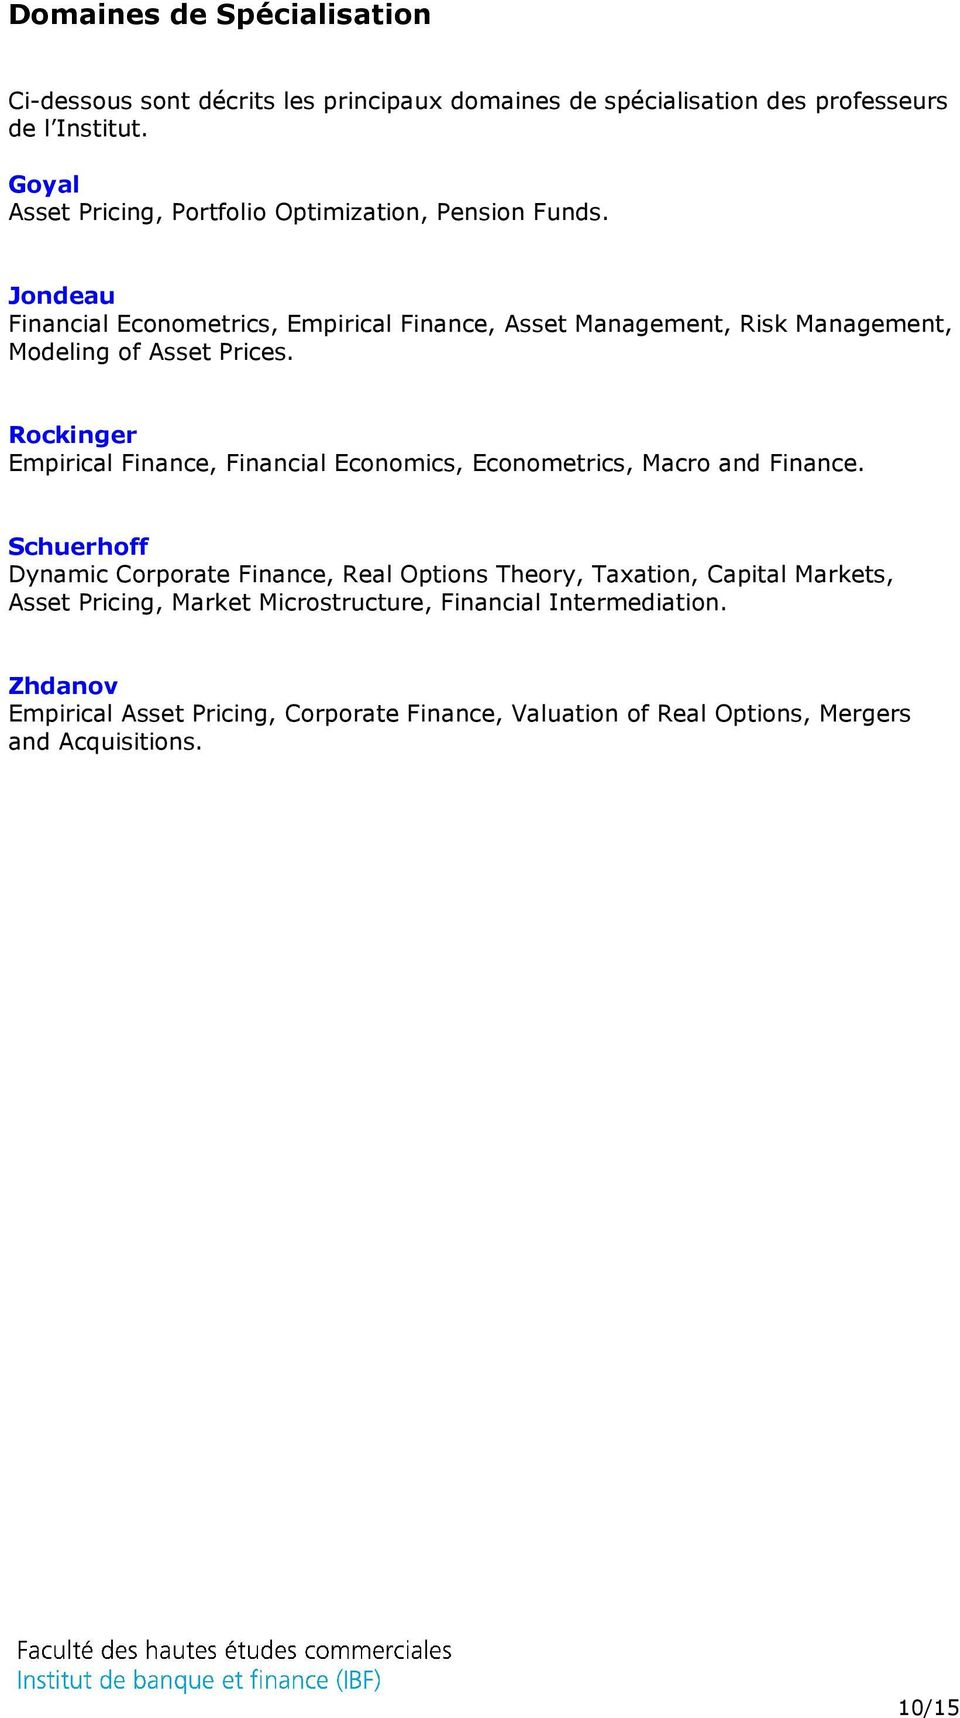 Jondeau Financial Econometrics, Empirical Finance, Asset Management, Risk Management, Modeling of Asset Prices.